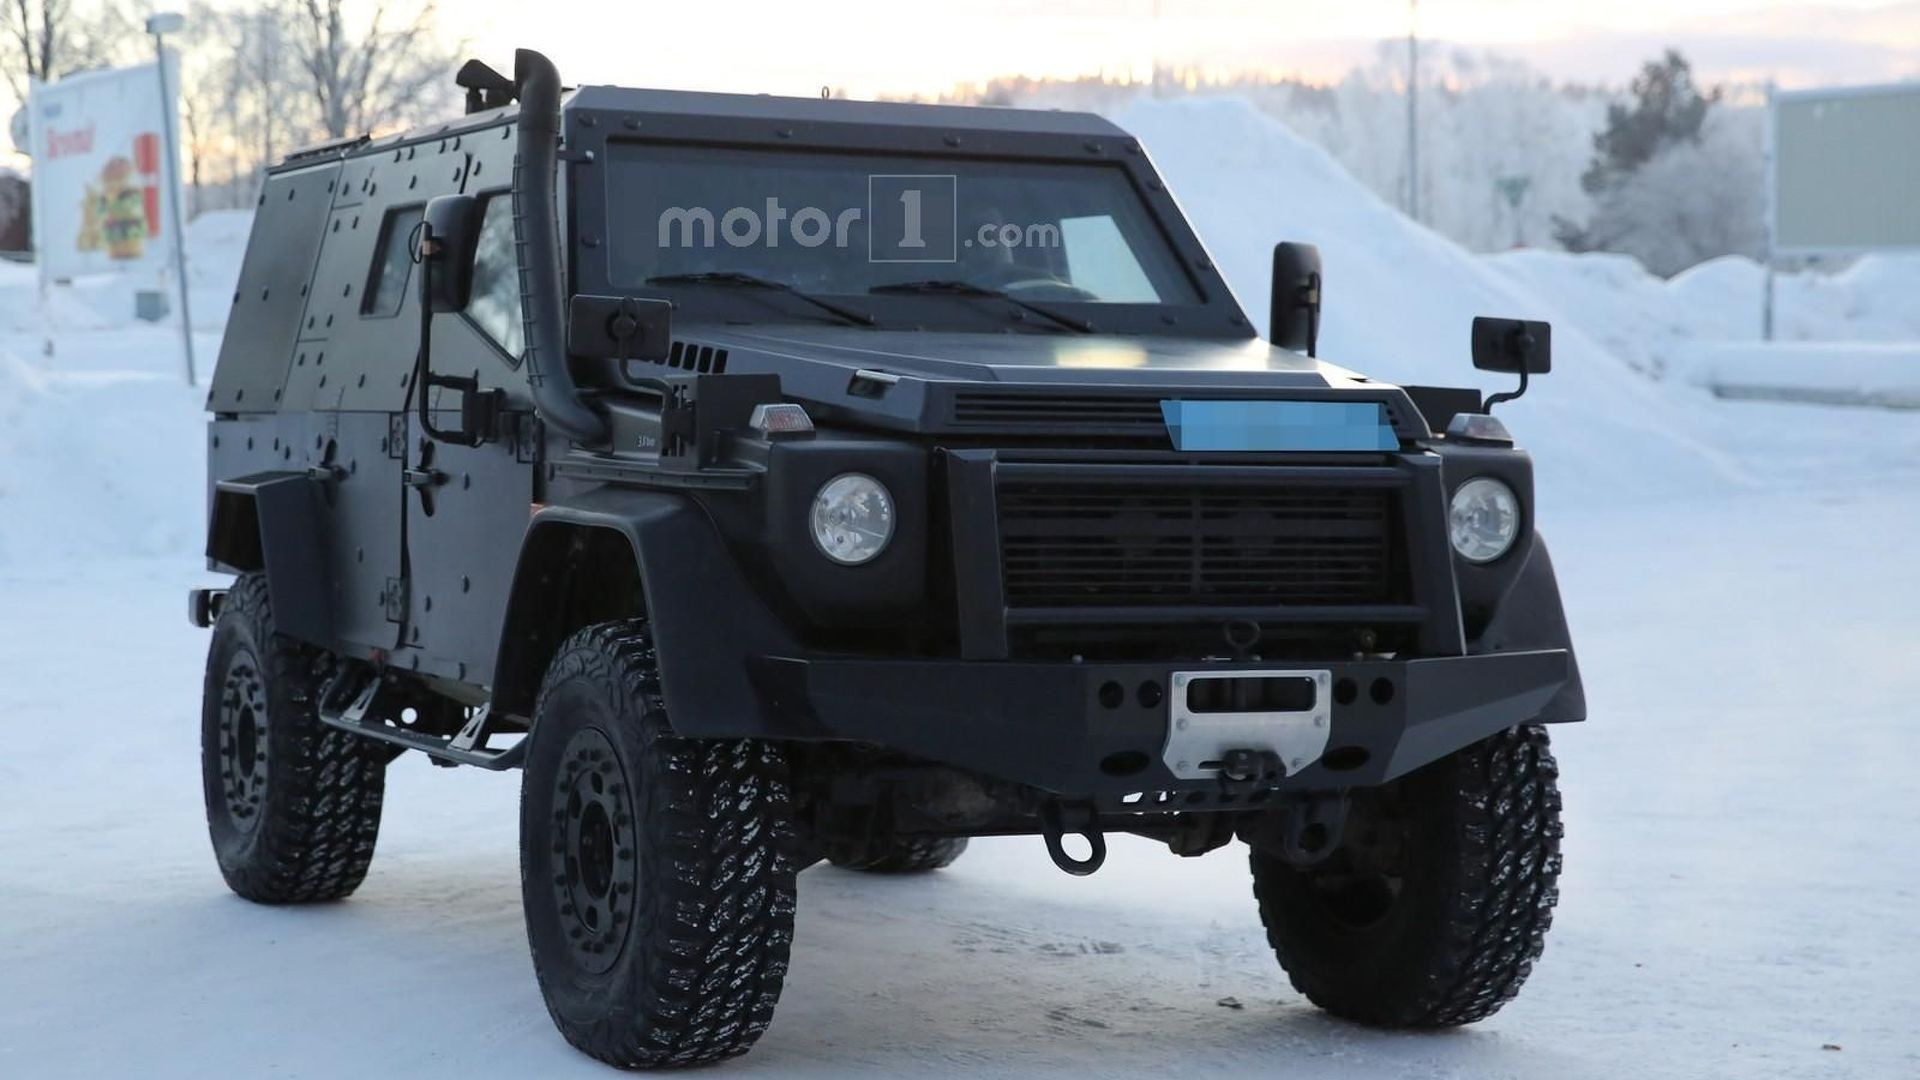 Mercedes G Class Light Armoured Patrol Vehicle spied near the Arctic Circle